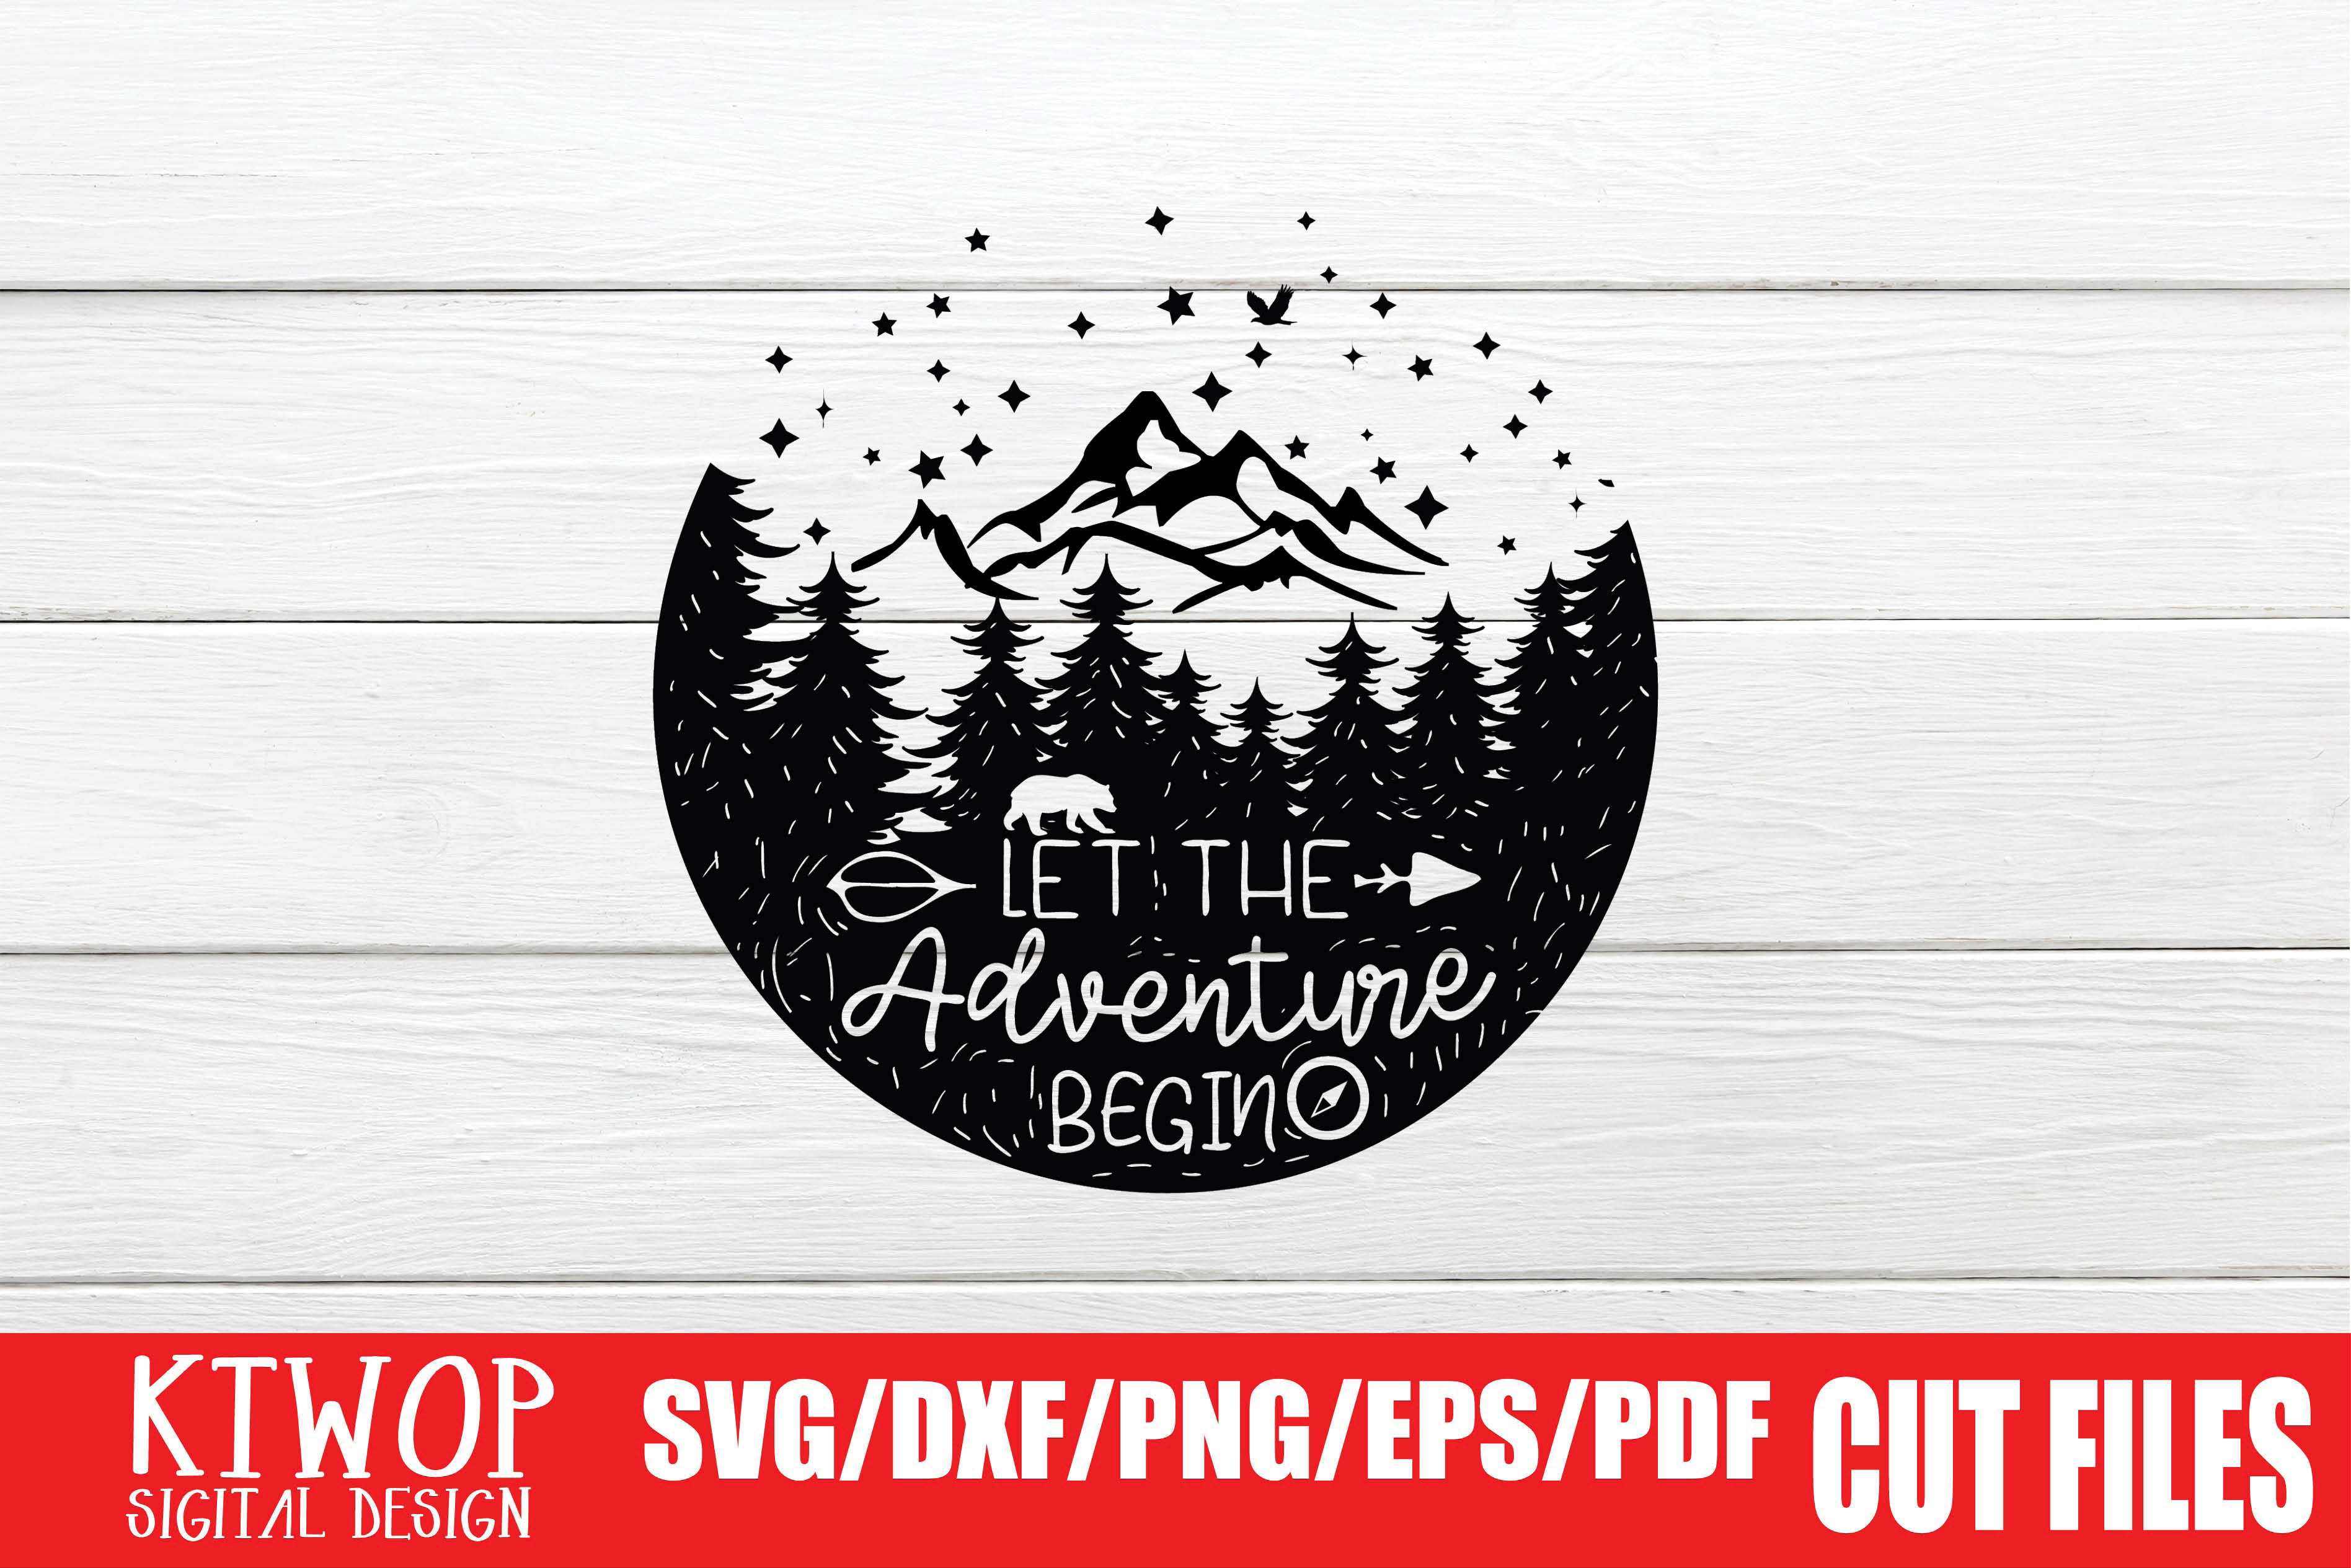 Download Free Let The Adventure Begin Graphic By Ktwop Creative Fabrica for Cricut Explore, Silhouette and other cutting machines.